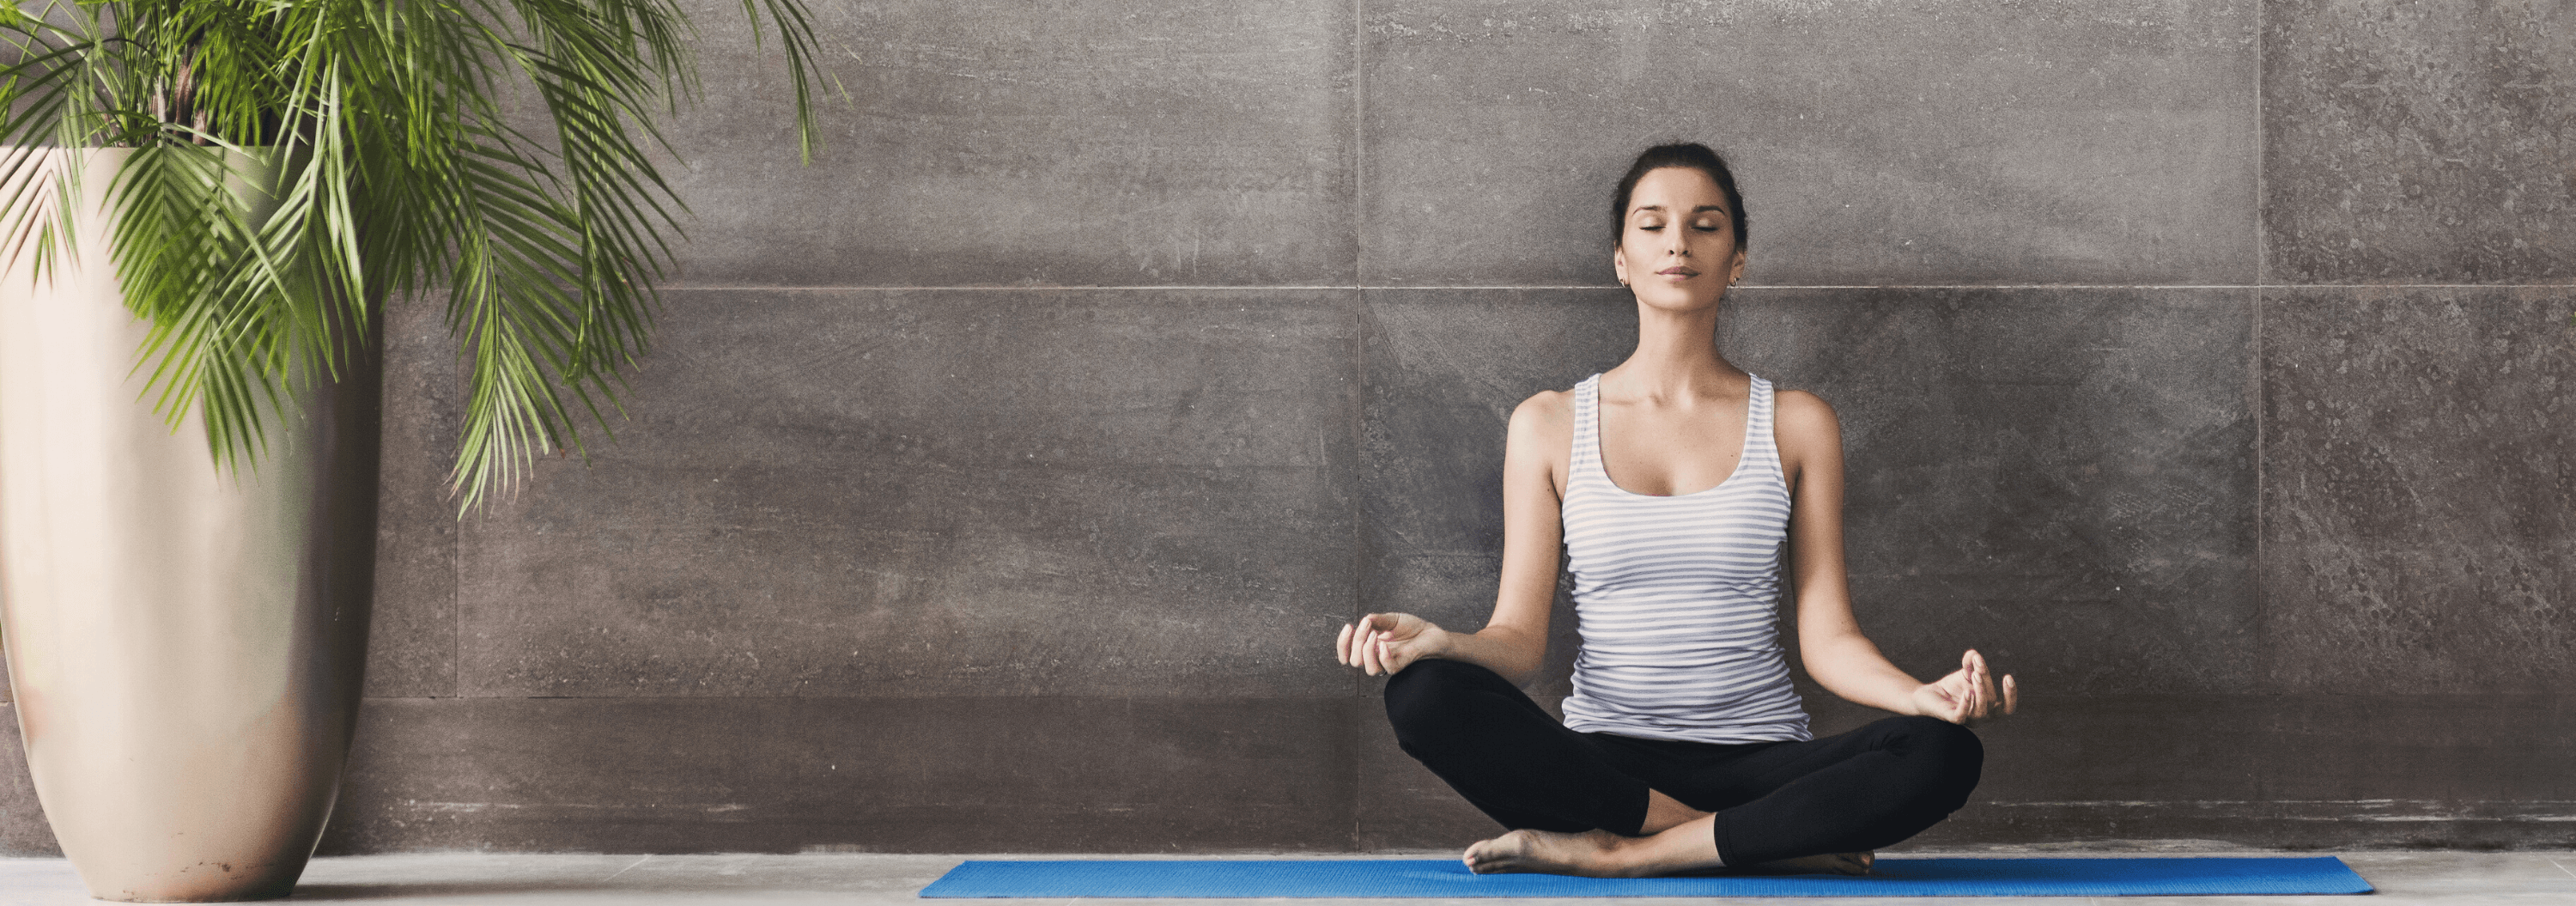 Meditation and Mindfulness – Essential Tools & Simple Tips To Keep The Calm In Your Daily Lifestyle